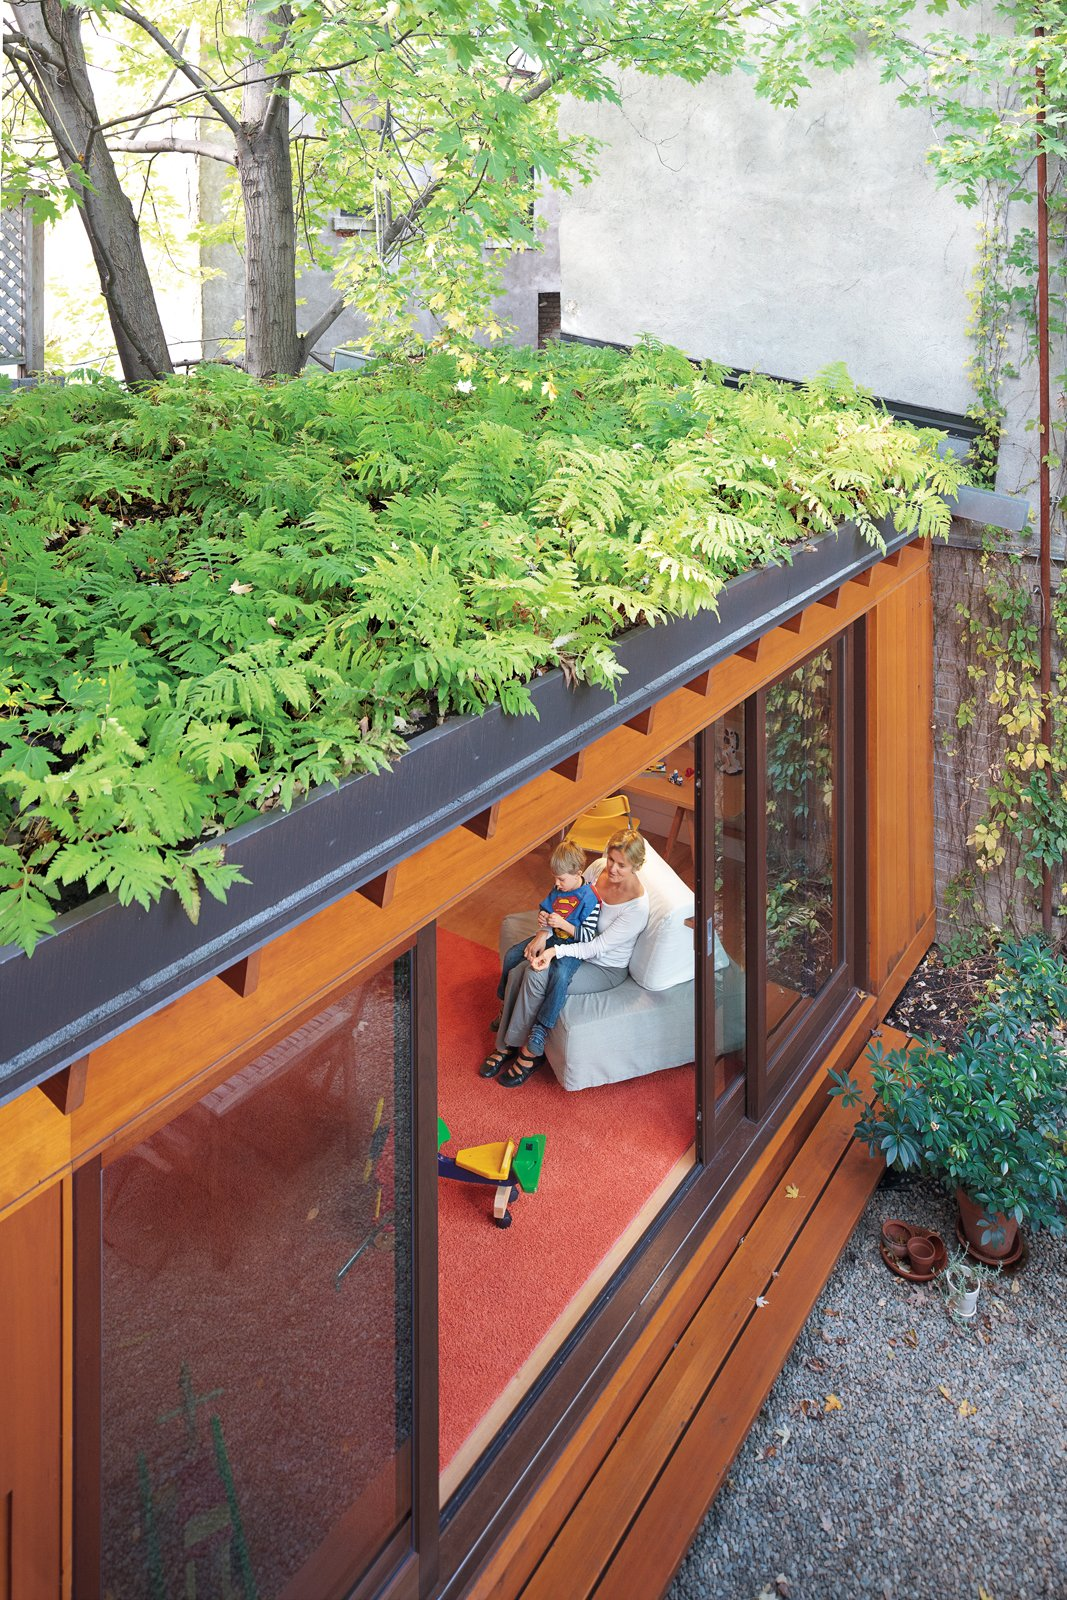 A small, single-story addition to the row house adds a playroom without eating up too much outdoor space. A green roof also helps makes up for lost garden beds, while creating attractive, leafy views from the second and third floors. In summer, when the sliding doors are left wide open, indoor and outdoor spaces blend together.  The Most Popular Homes in Dwell: 81-100 by Diana Budds from Separate Boîte Equal